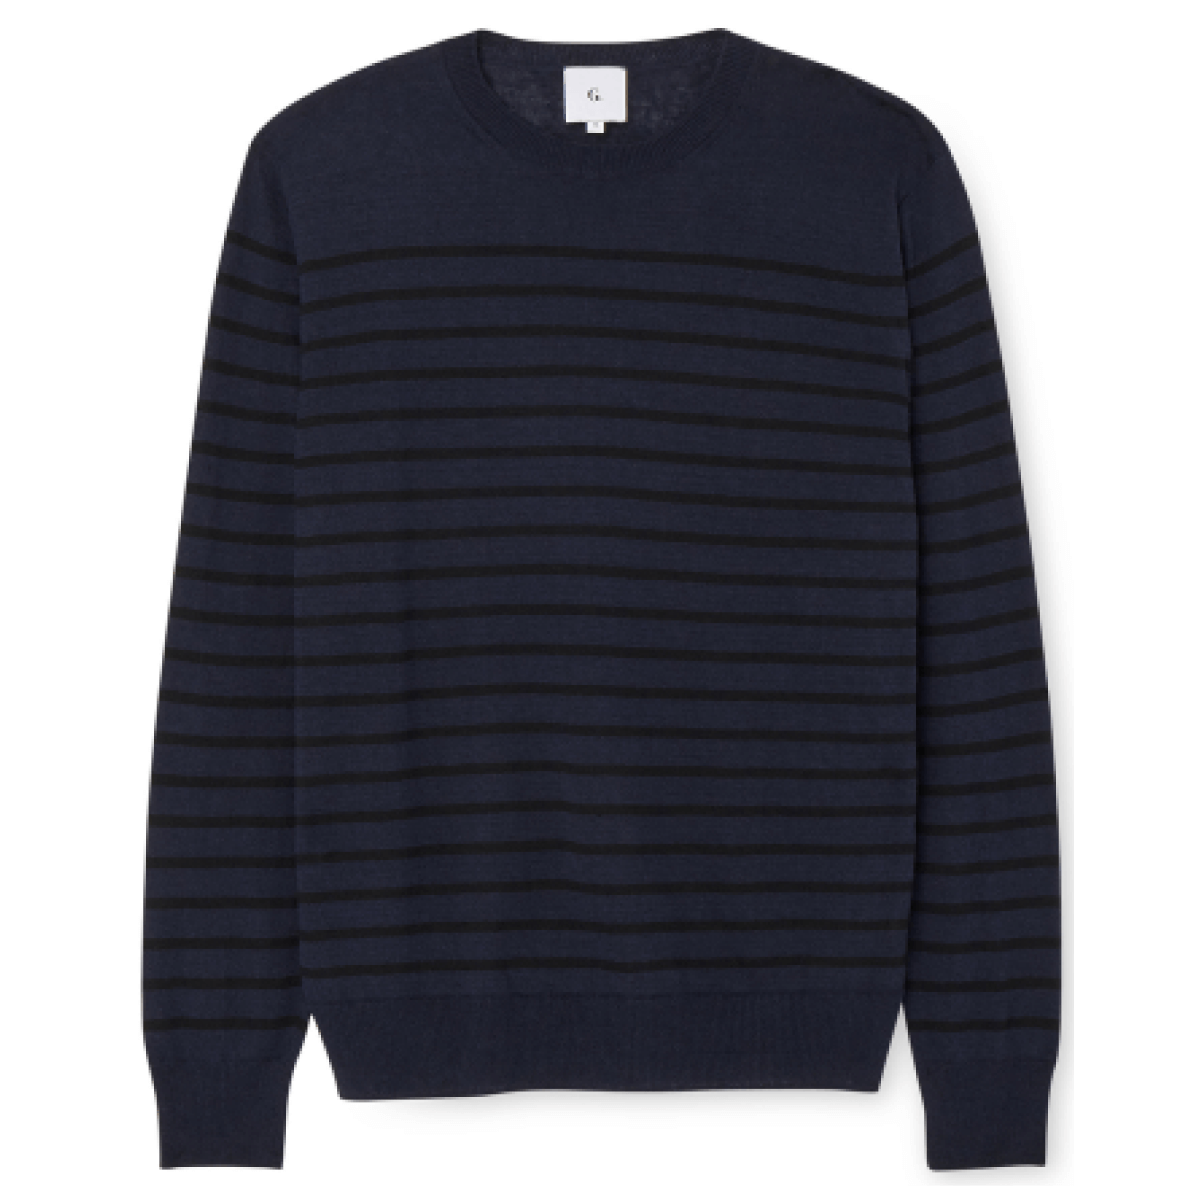 G. Label Tony Striped Linen Sweater